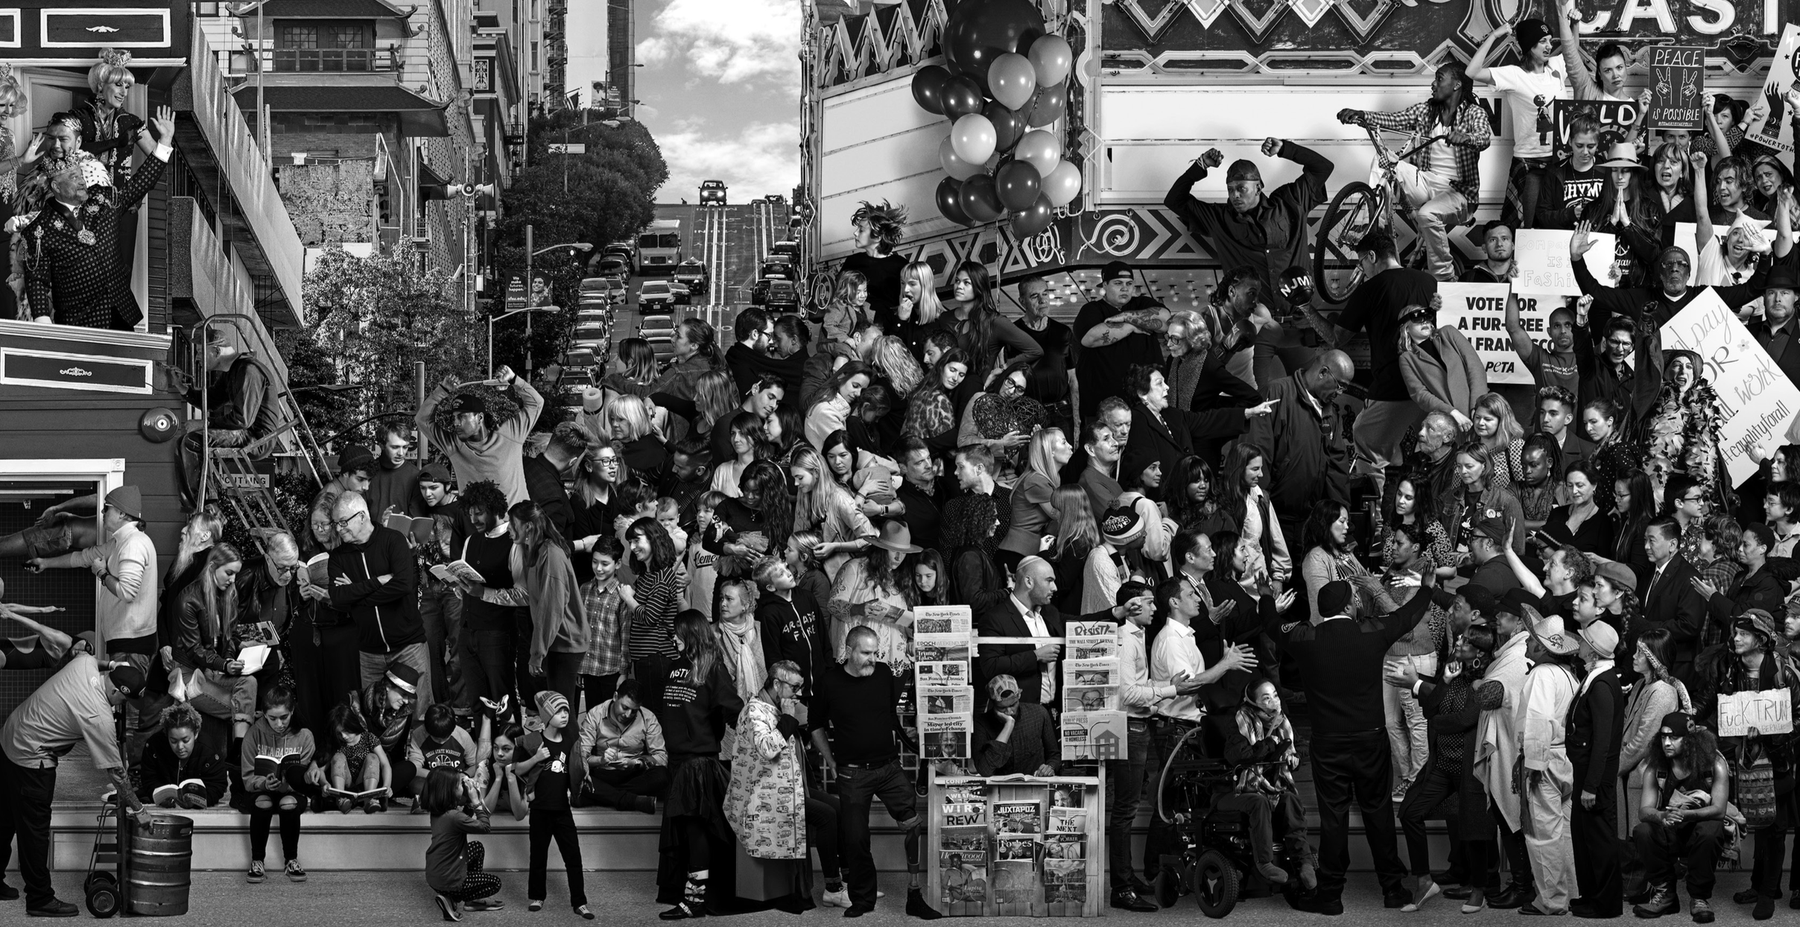 black and white mural filled with some people reading and some protesting